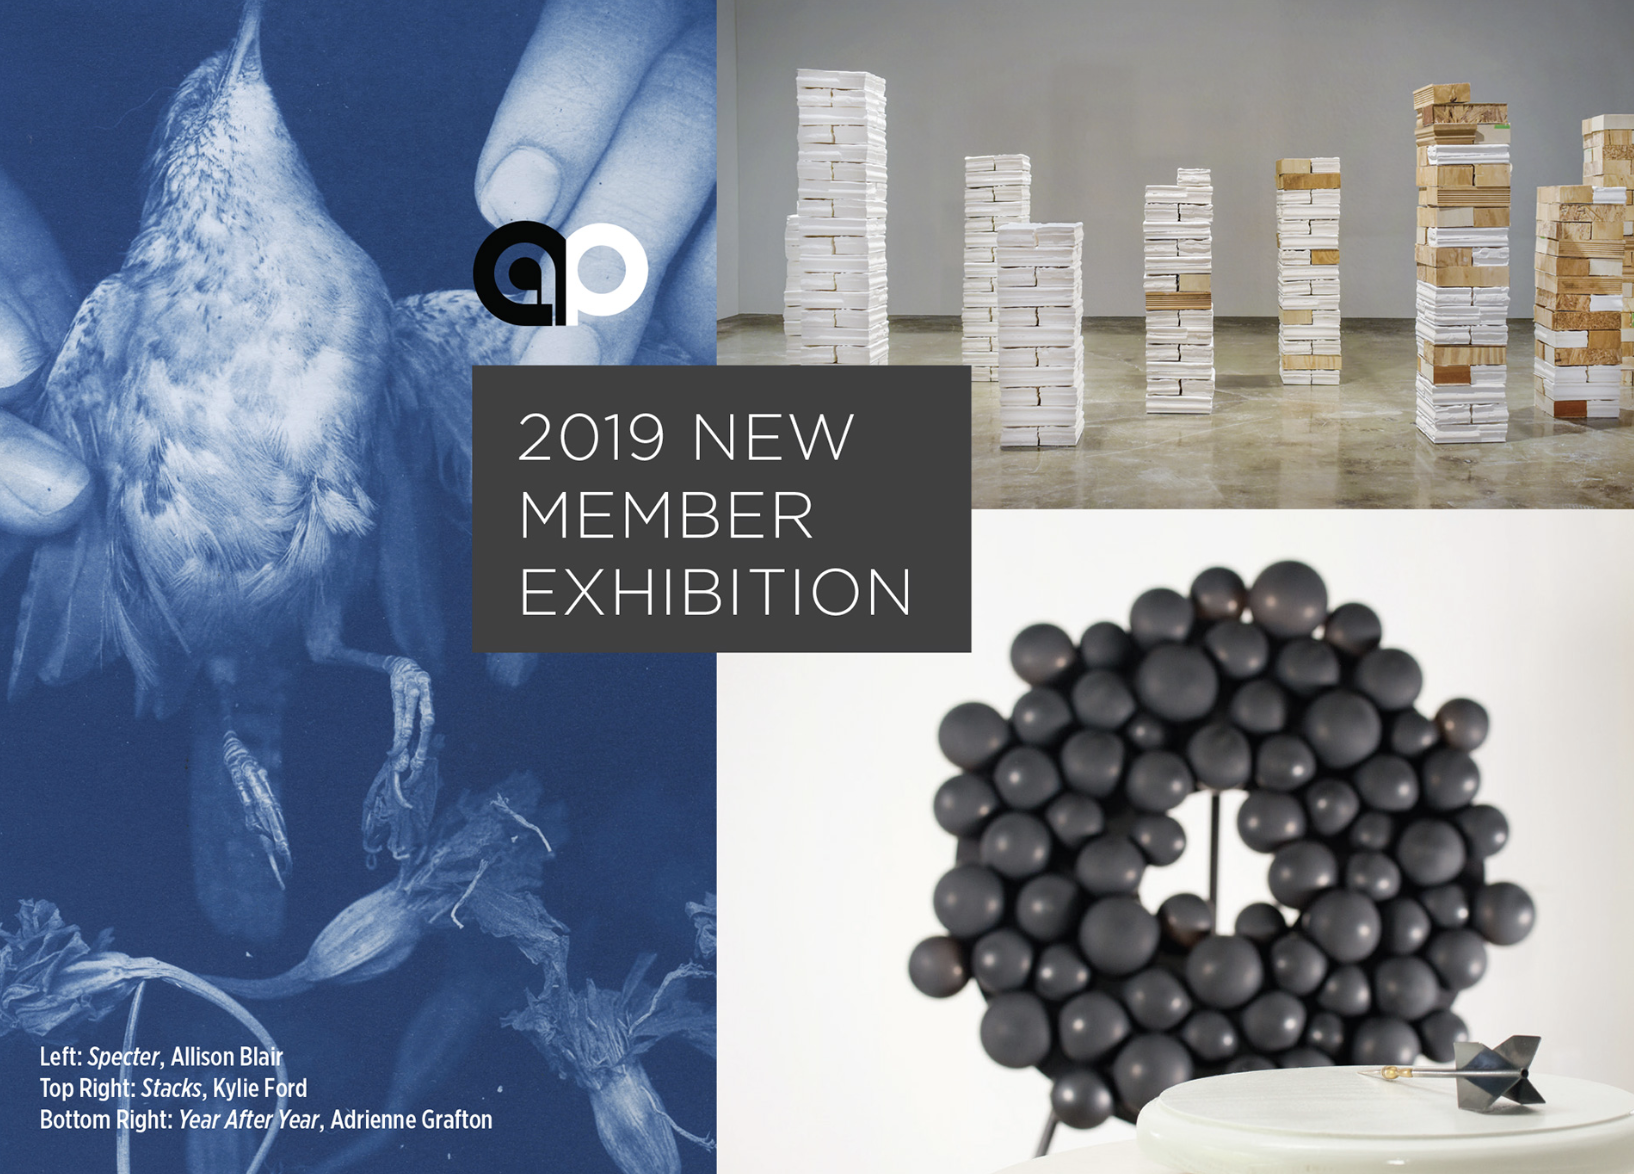 2019 New Member Exhibition   May 11–June 30, 2019   Pittsburgh Center for Arts & Media   Featuring the work of Karen Antonelli, Allison Blair, Cory Bonnet, Eric Charlton, Kevin Clancy, Thommy Conroy, Matthew Constant, Dennis Doyle, Dan Droz, Tara Fay, Kylie Ford, Adrienne Grafton, Hannah Harley, Megan Herwig, Christopher Hofmann, J Houston, Selena Hurst, Tressa Jones, Alyssa Kail, Ignacio Lopez, Karen Lue, Stephanie Martin, Paul Mullins, Brent Nakamoto, Njaimeh Njie, Joe Perry, Cassandra Pfaff, Justin Pope, Allan Rosenfield, John Sanders, Rachel Saul Rearick, Tyler Stanton, Sarah Tancred, and Annie Weidman.  The exhibition was curated by  Transmitter Gallery .